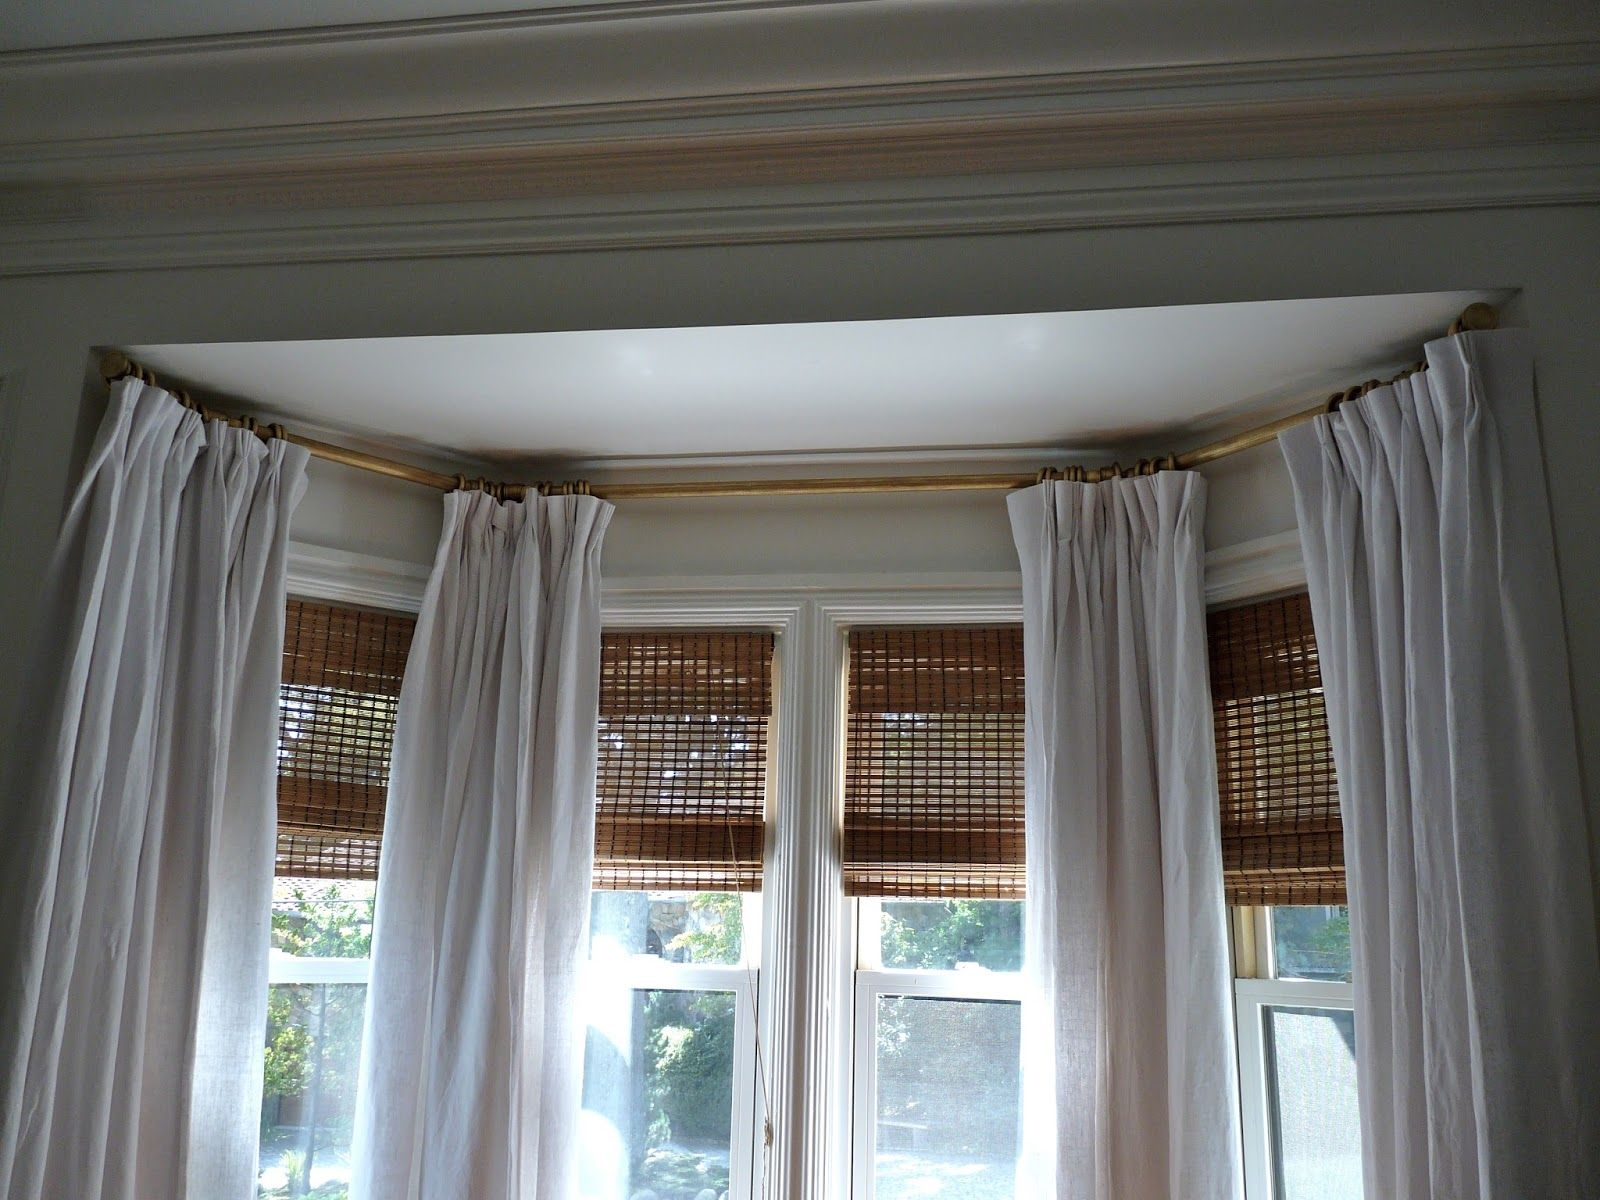 Square Bay Window Curtain Pole Rustic Curtain Rods Curved Curtain